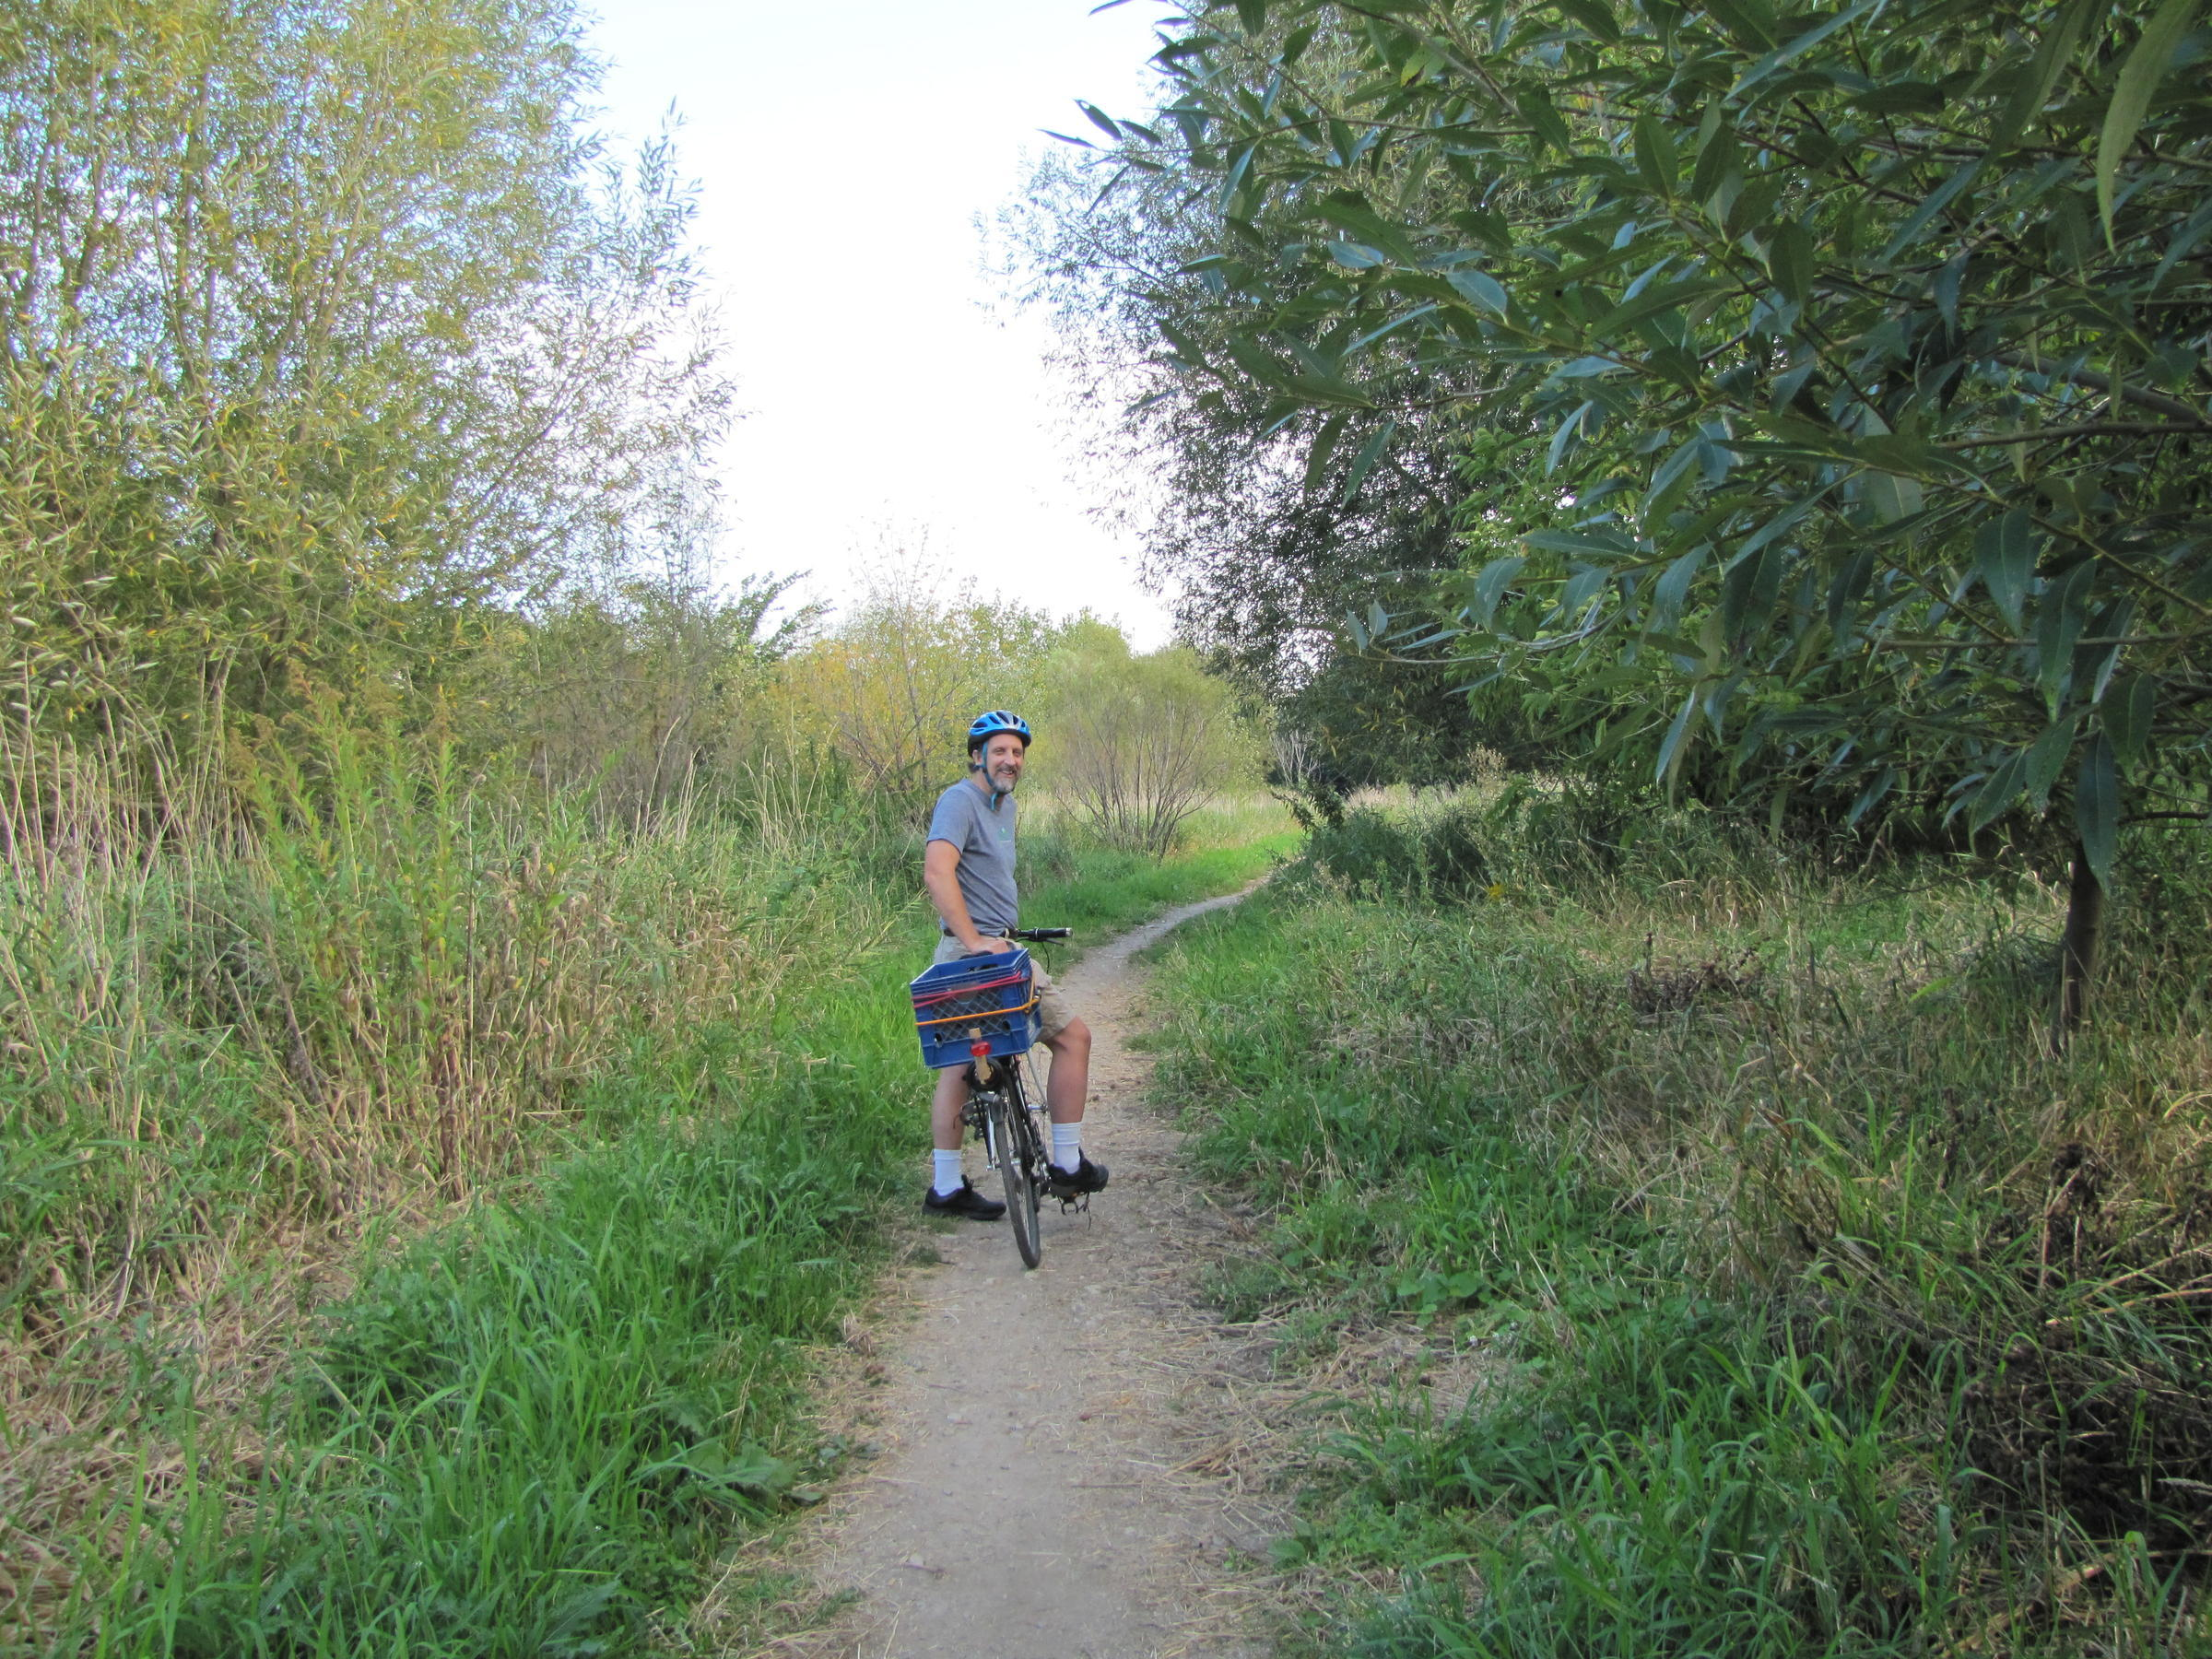 Walking with children and urban ecology